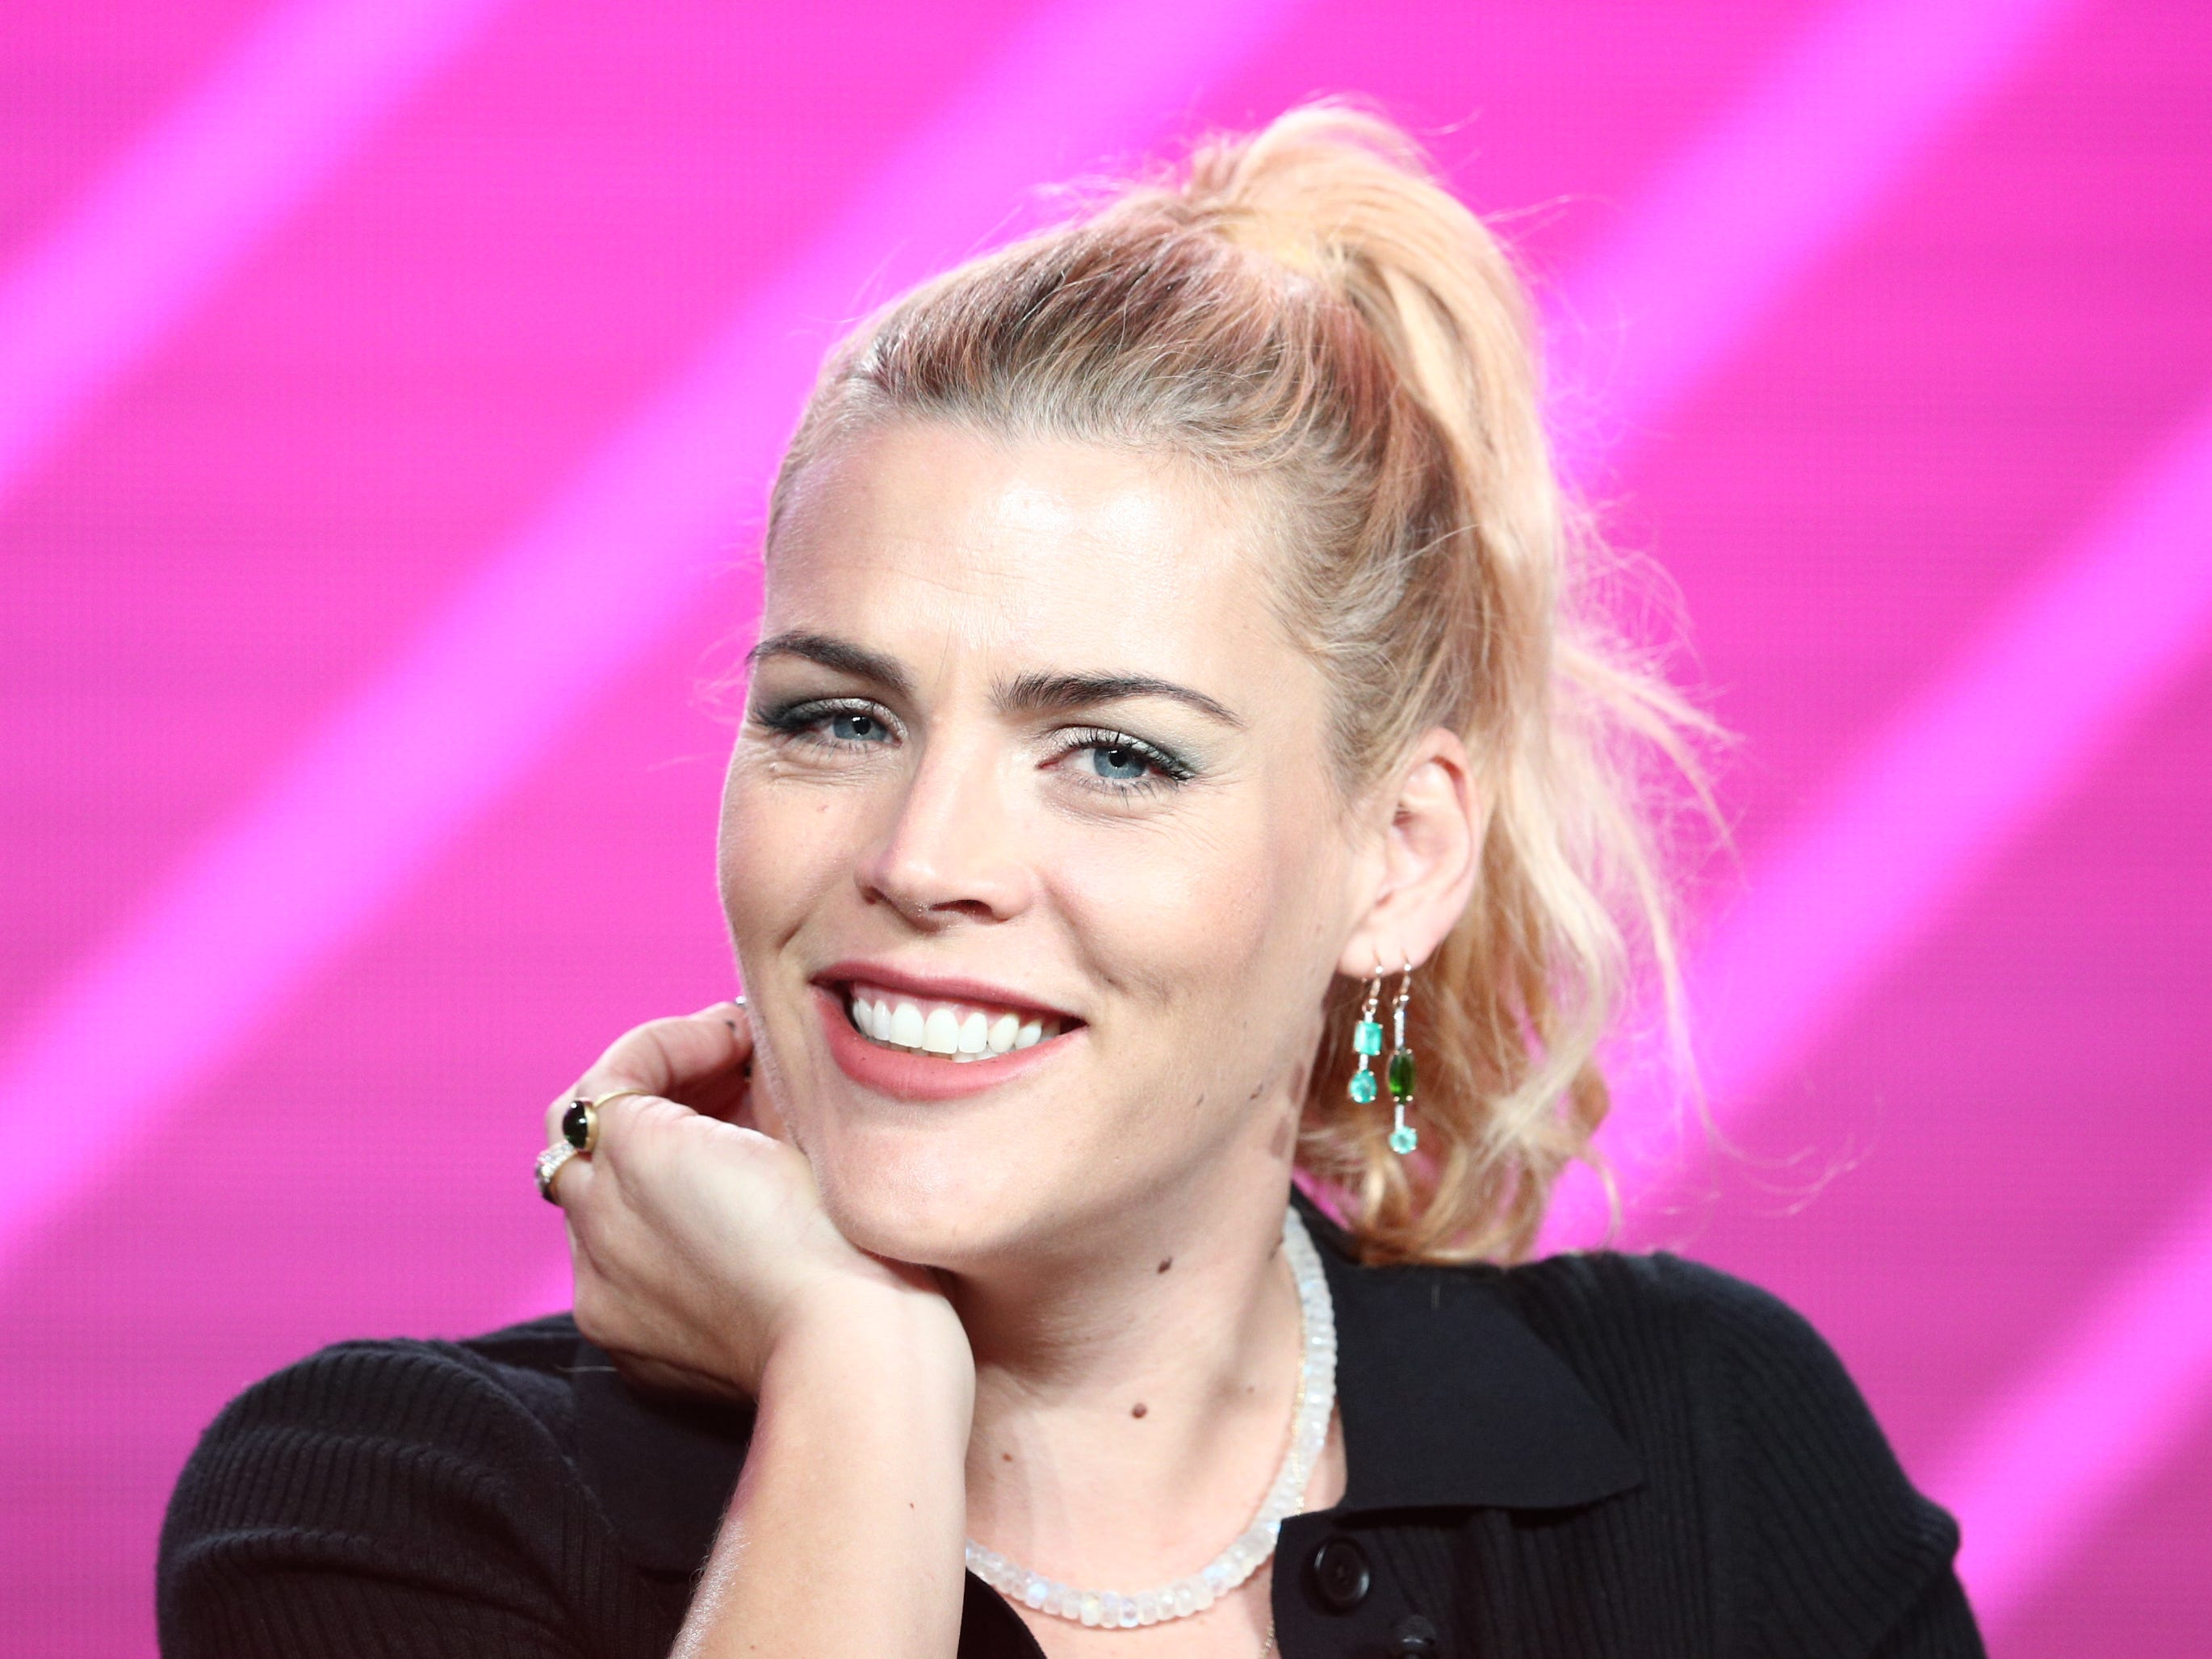 "PASADENA, CALIFORNIA - JANUARY 29: Busy Philipps speaks on the ""Busy Tonight"" panel during the NBCUniversal portion of the Television Critics Association Winter Press Tour at The Langham Huntington, Pasadena on January 29, 2019 in Pasadena, California. (Photo by Frederick M. Brown/Getty Images) ORG XMIT: 775283183 ORIG FILE ID: 1126008800"